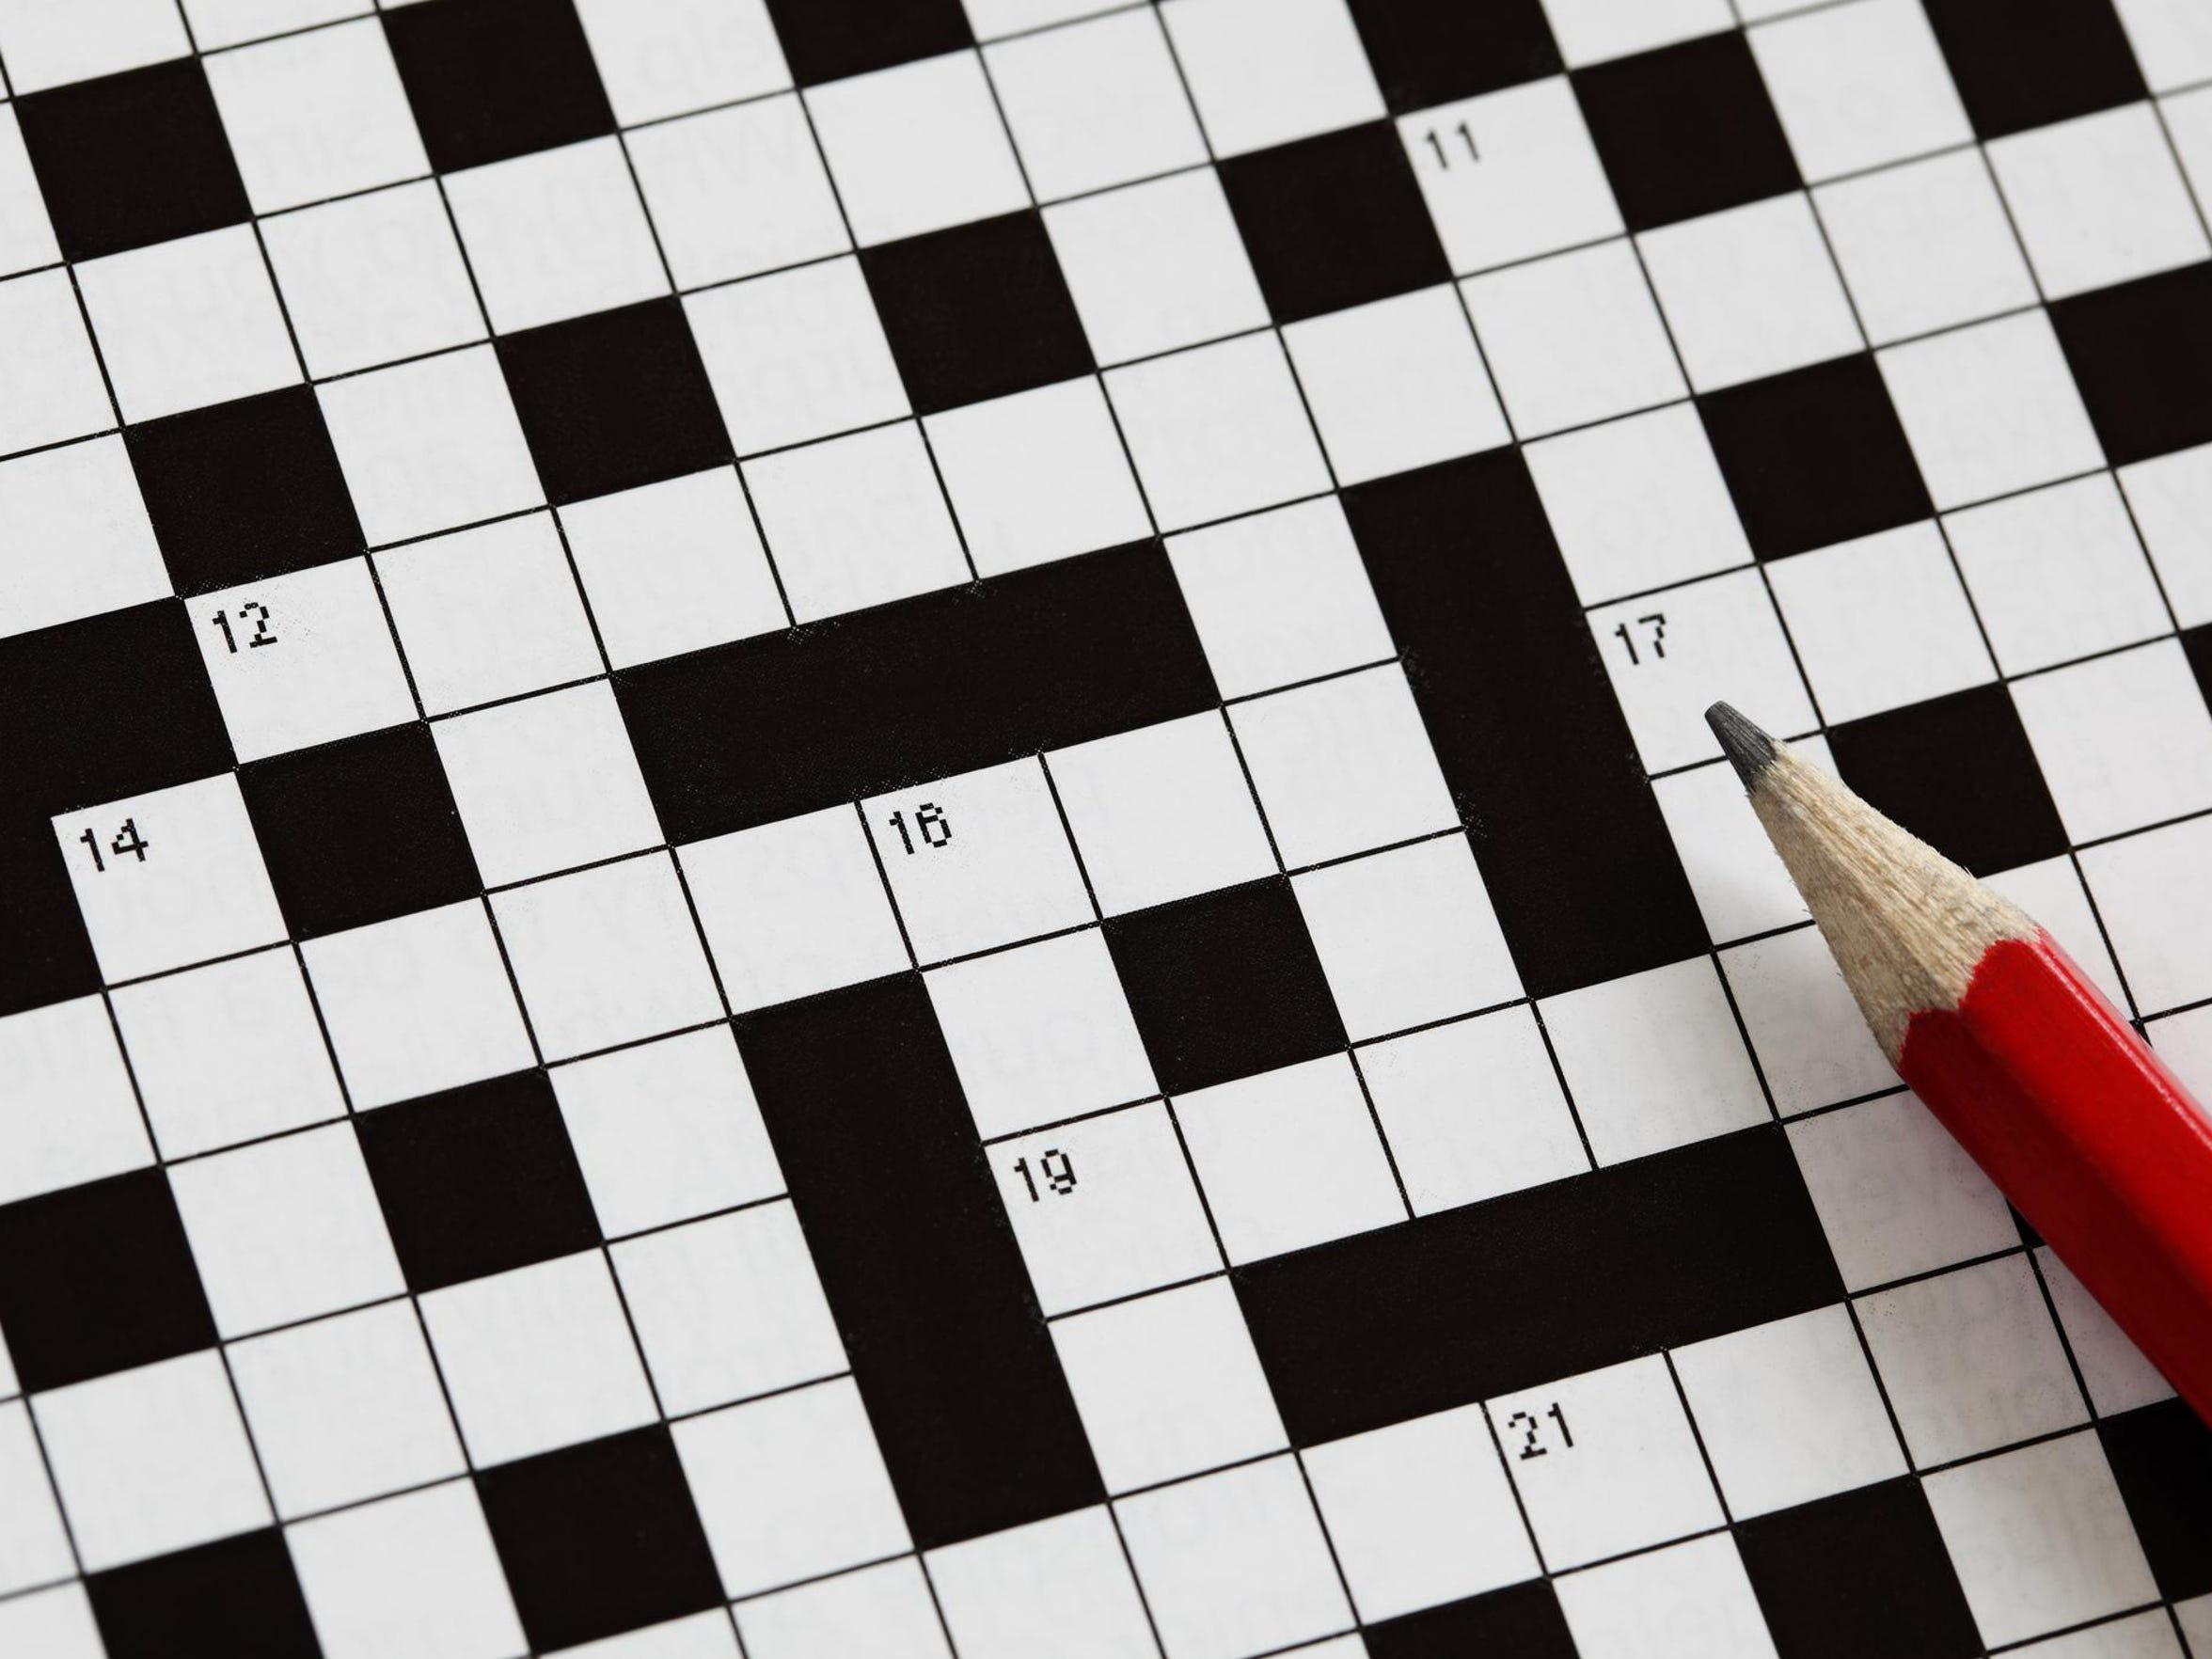 The huge crossword puzzle, which stretches over two full pages, will be in the Thanksgiving Day edition of the Caller-Times.